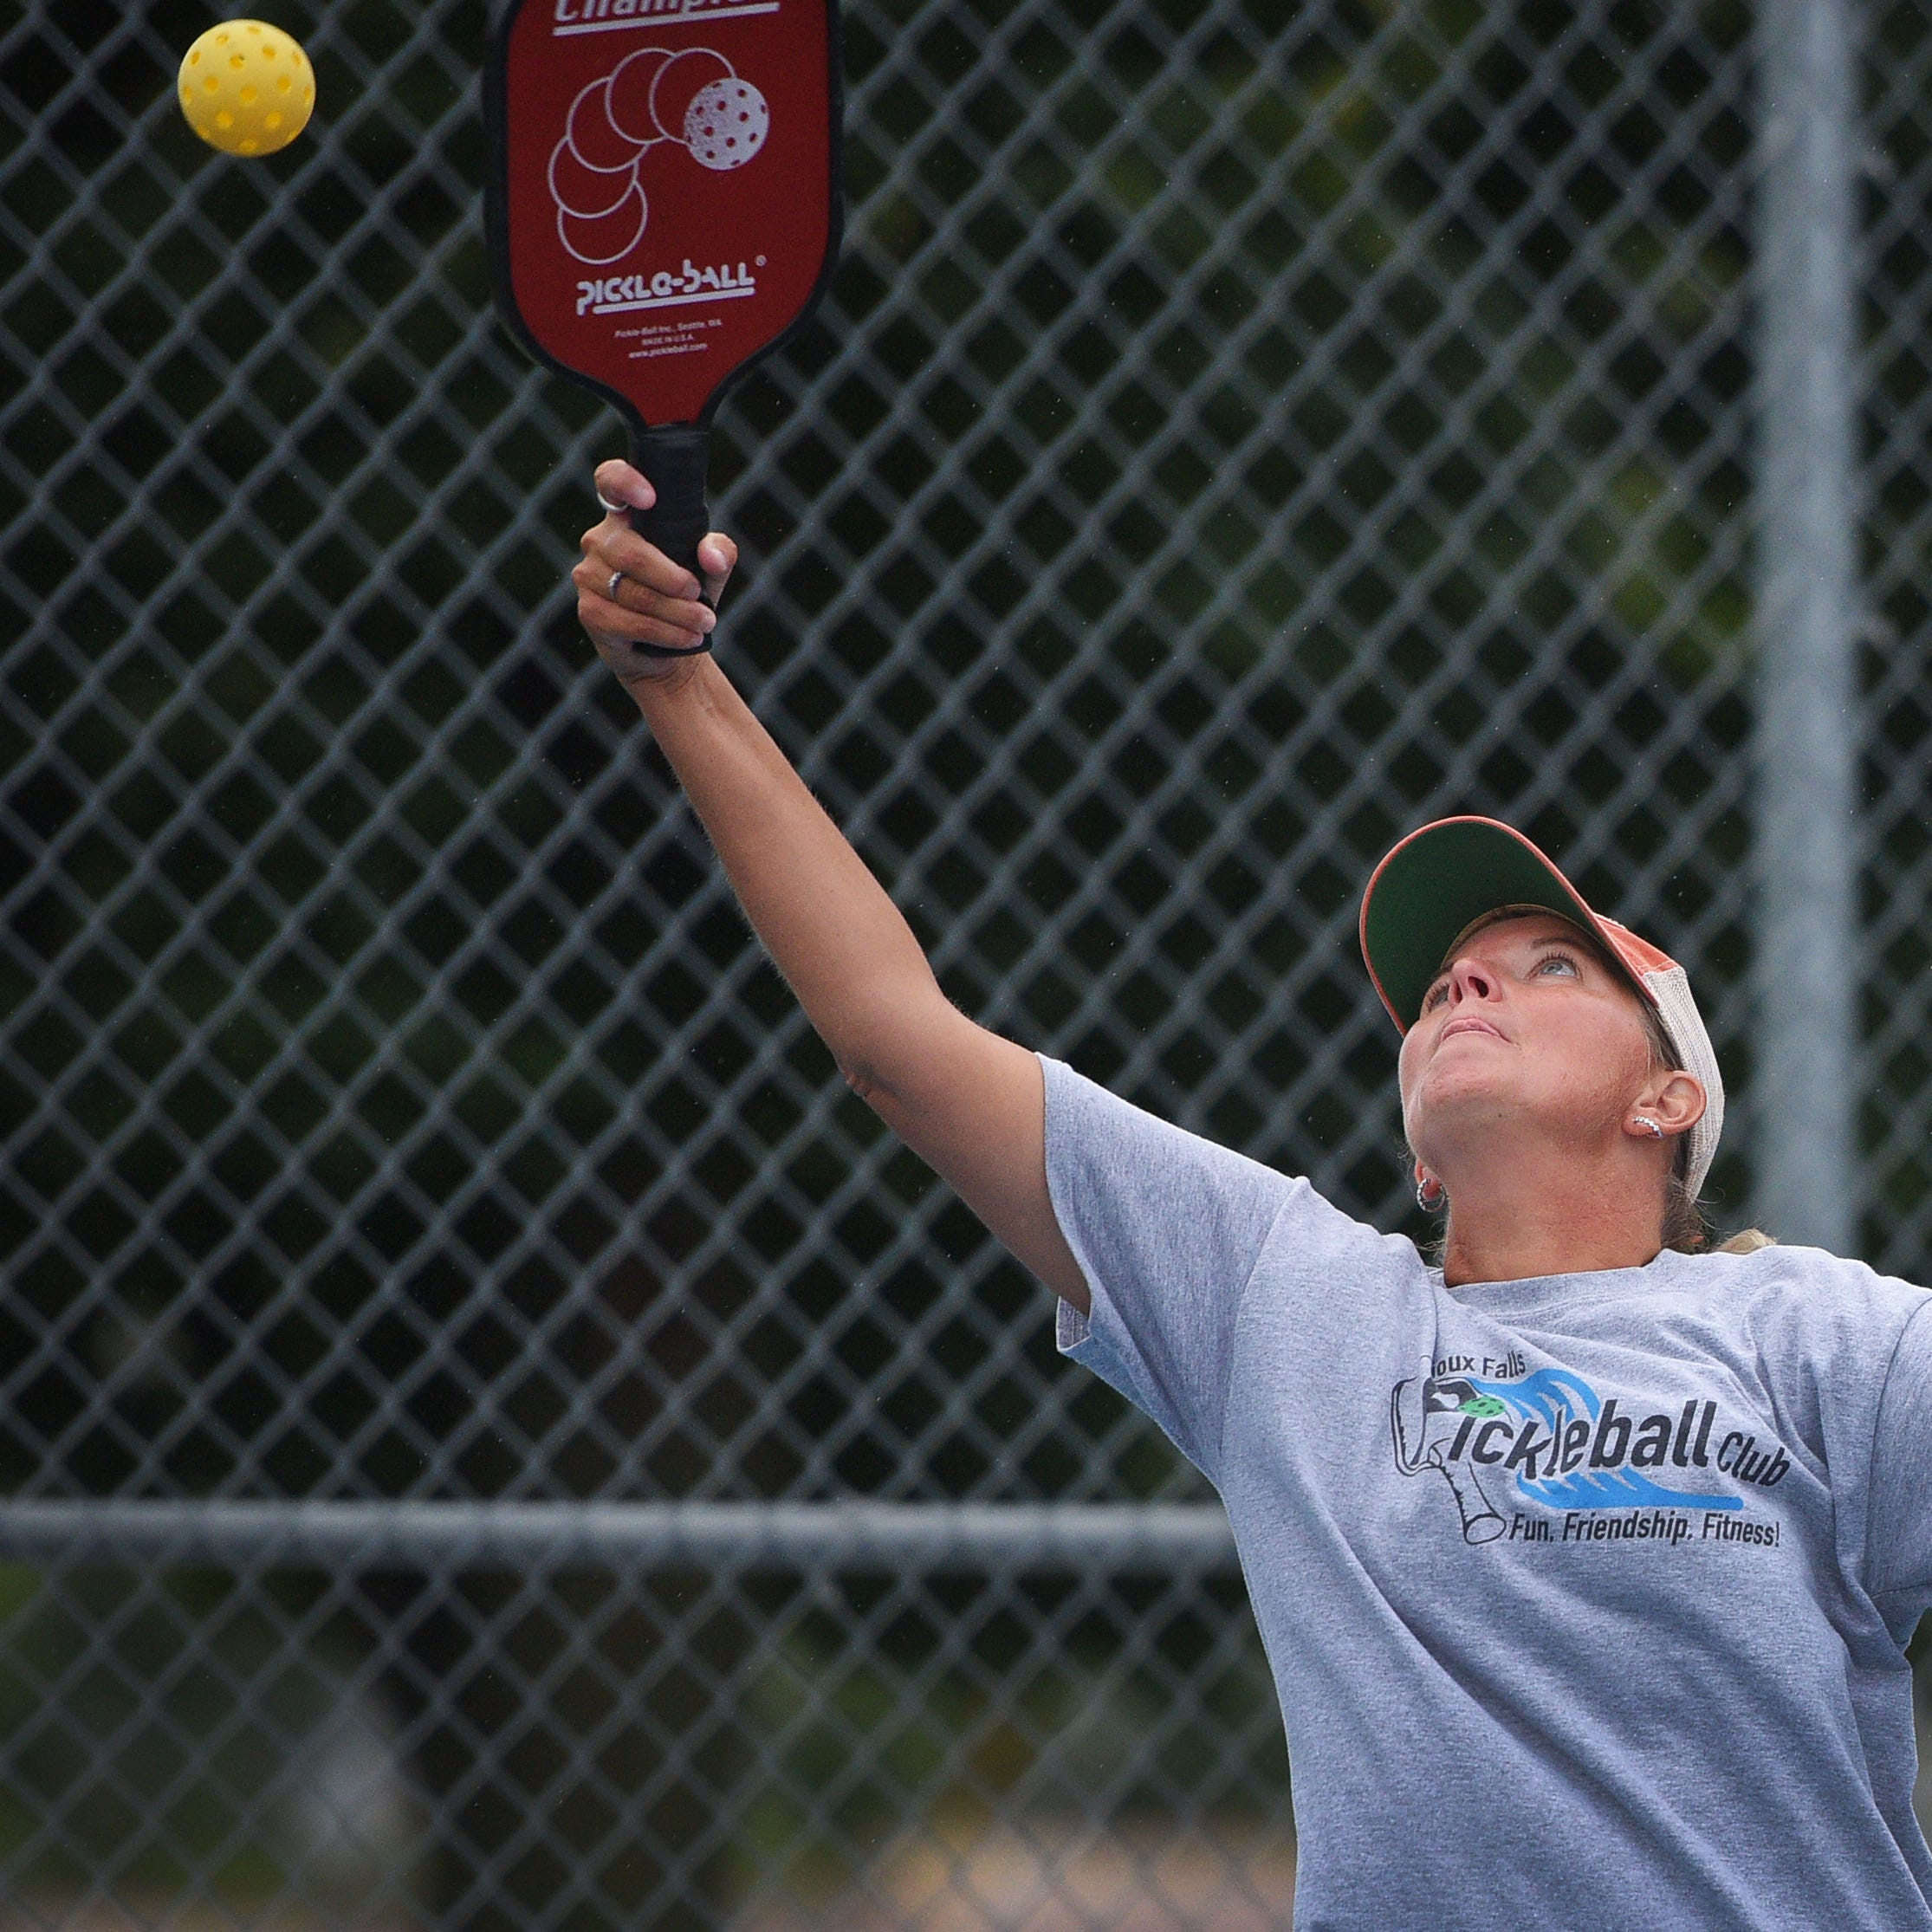 Pickleball is a growing sport in Sioux Falls, and organizers want you to give it a try